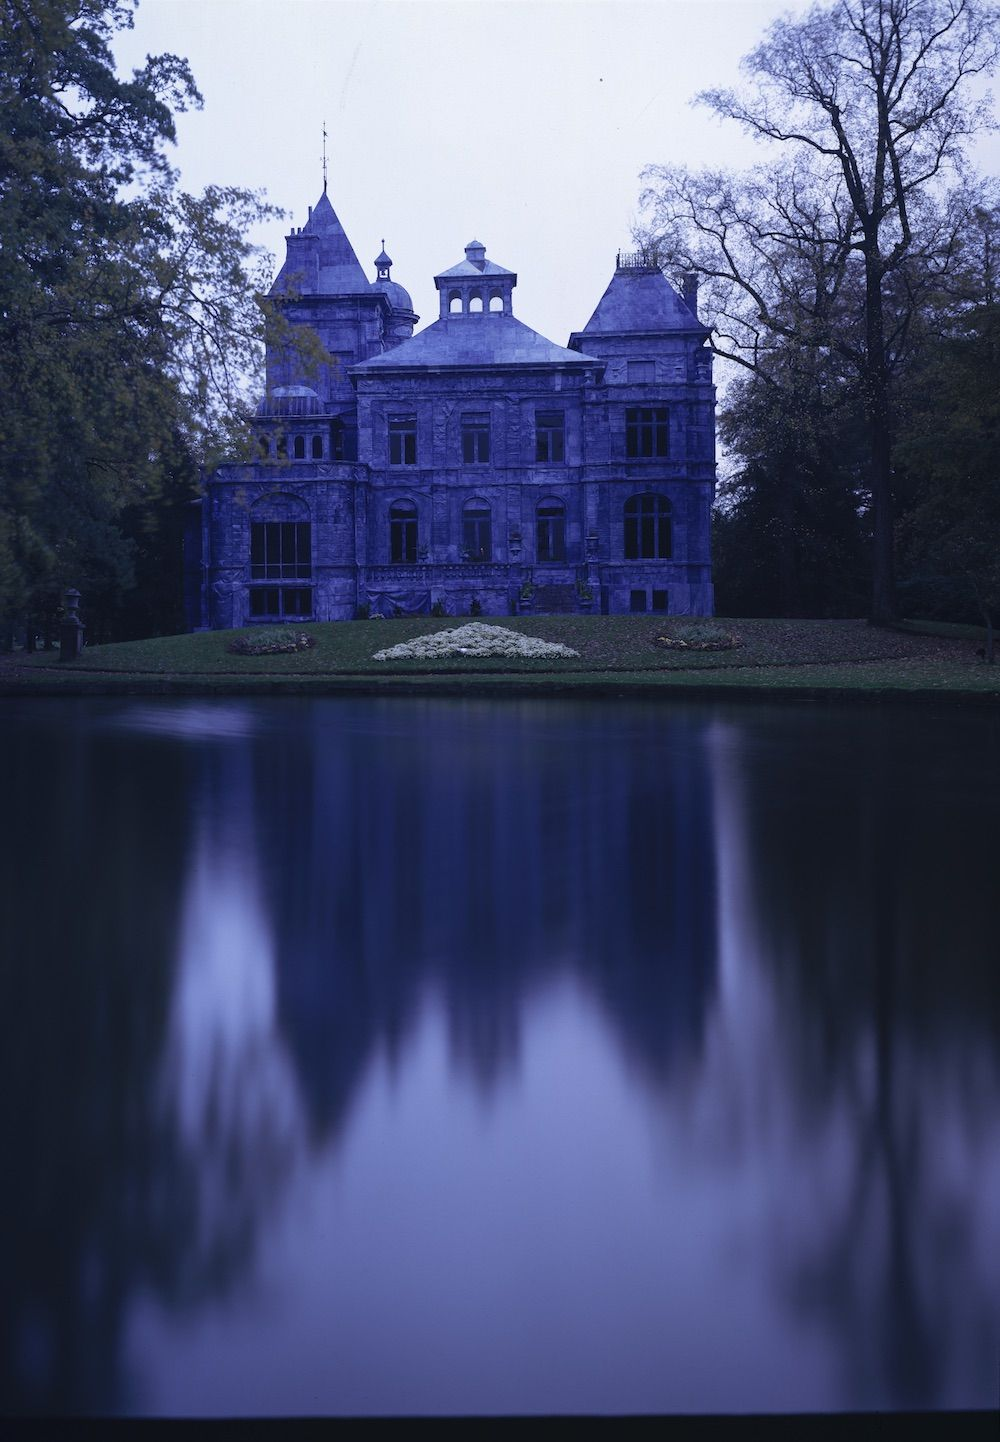 THE CASTLES IN THE HOUR BLUE